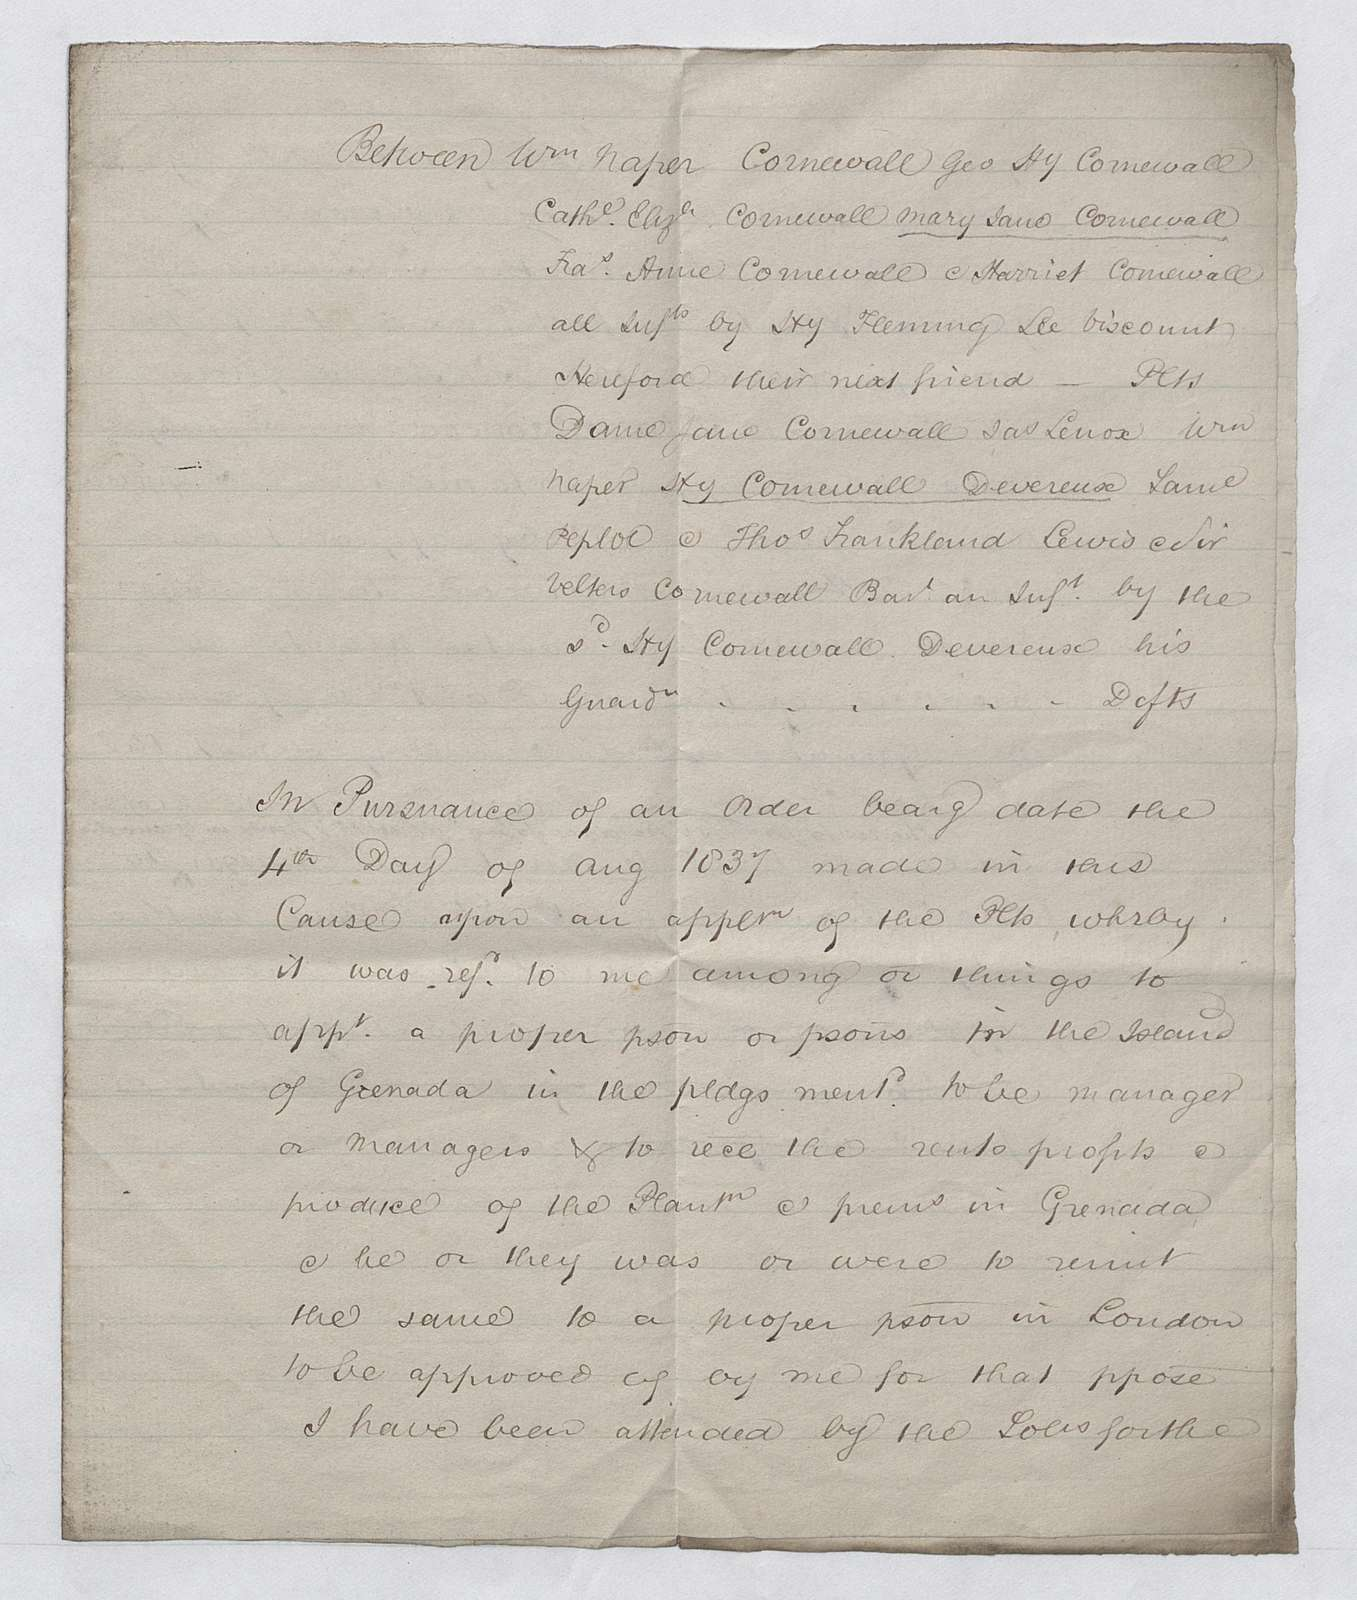 Messrs. Addie & Co. report approving manager of Estate of Grenada in pursuance of an order dated August 4, 1837